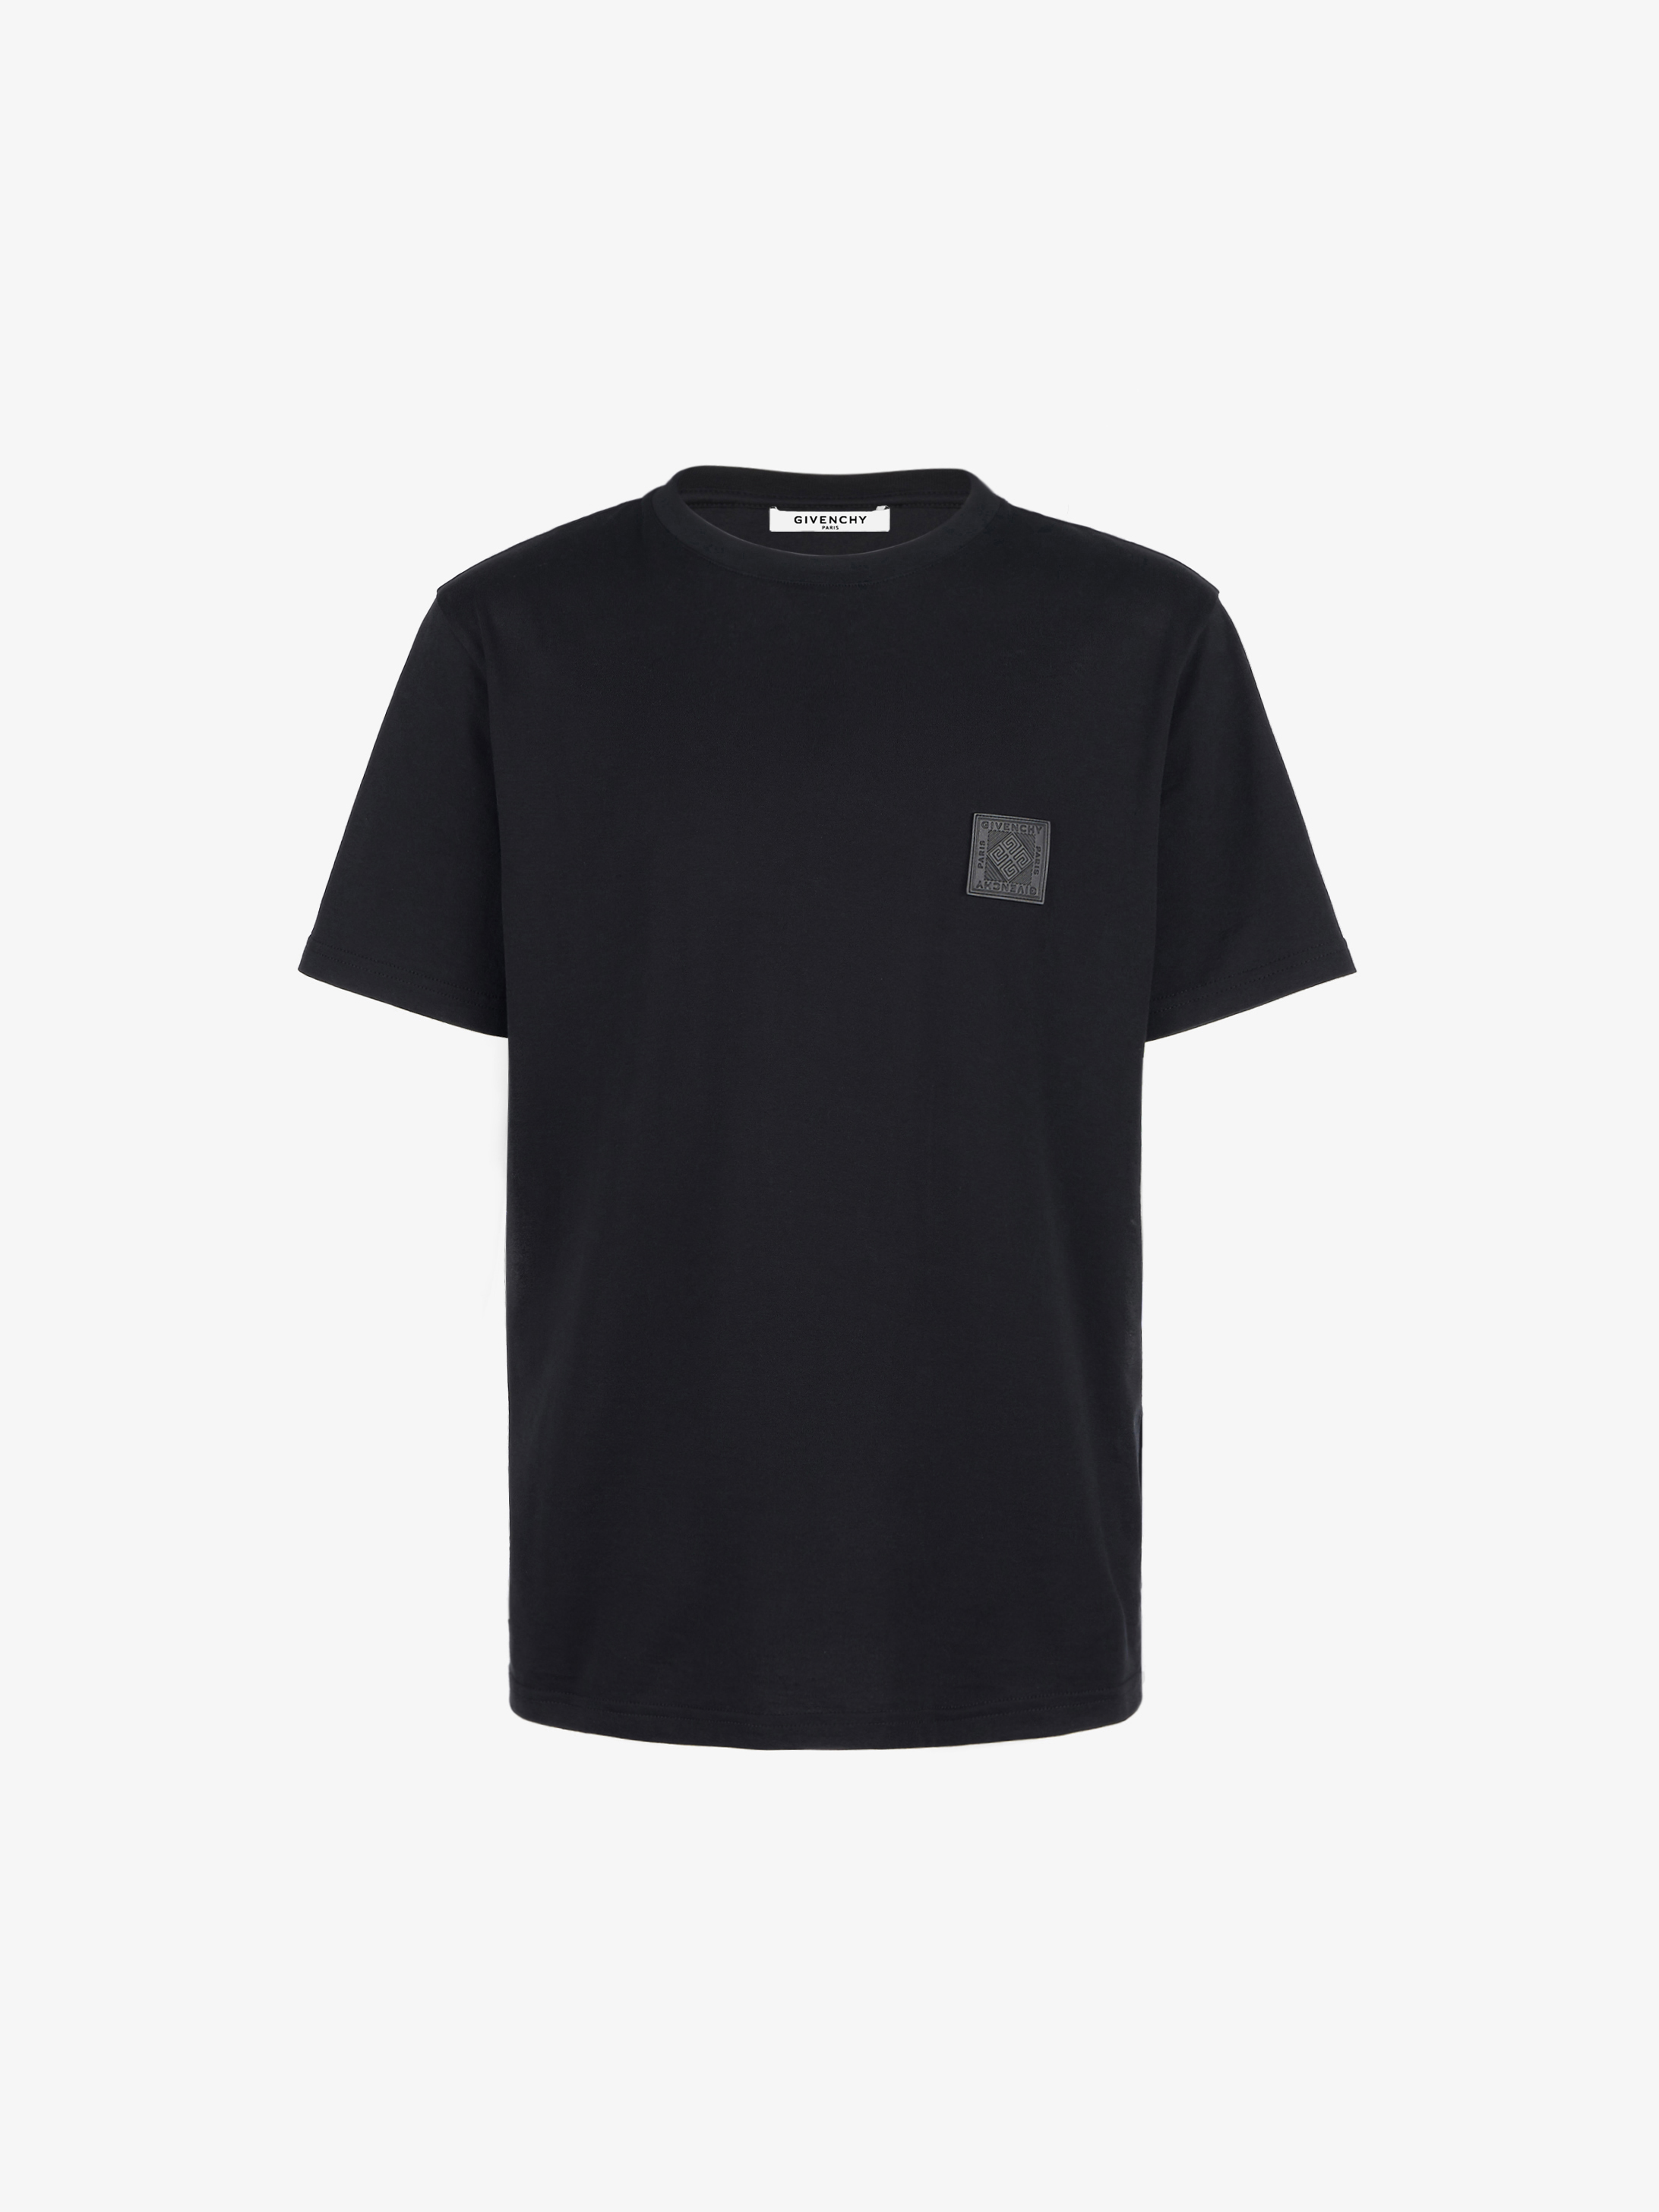 GIVENCHY 4G patch slim fit T-shirt